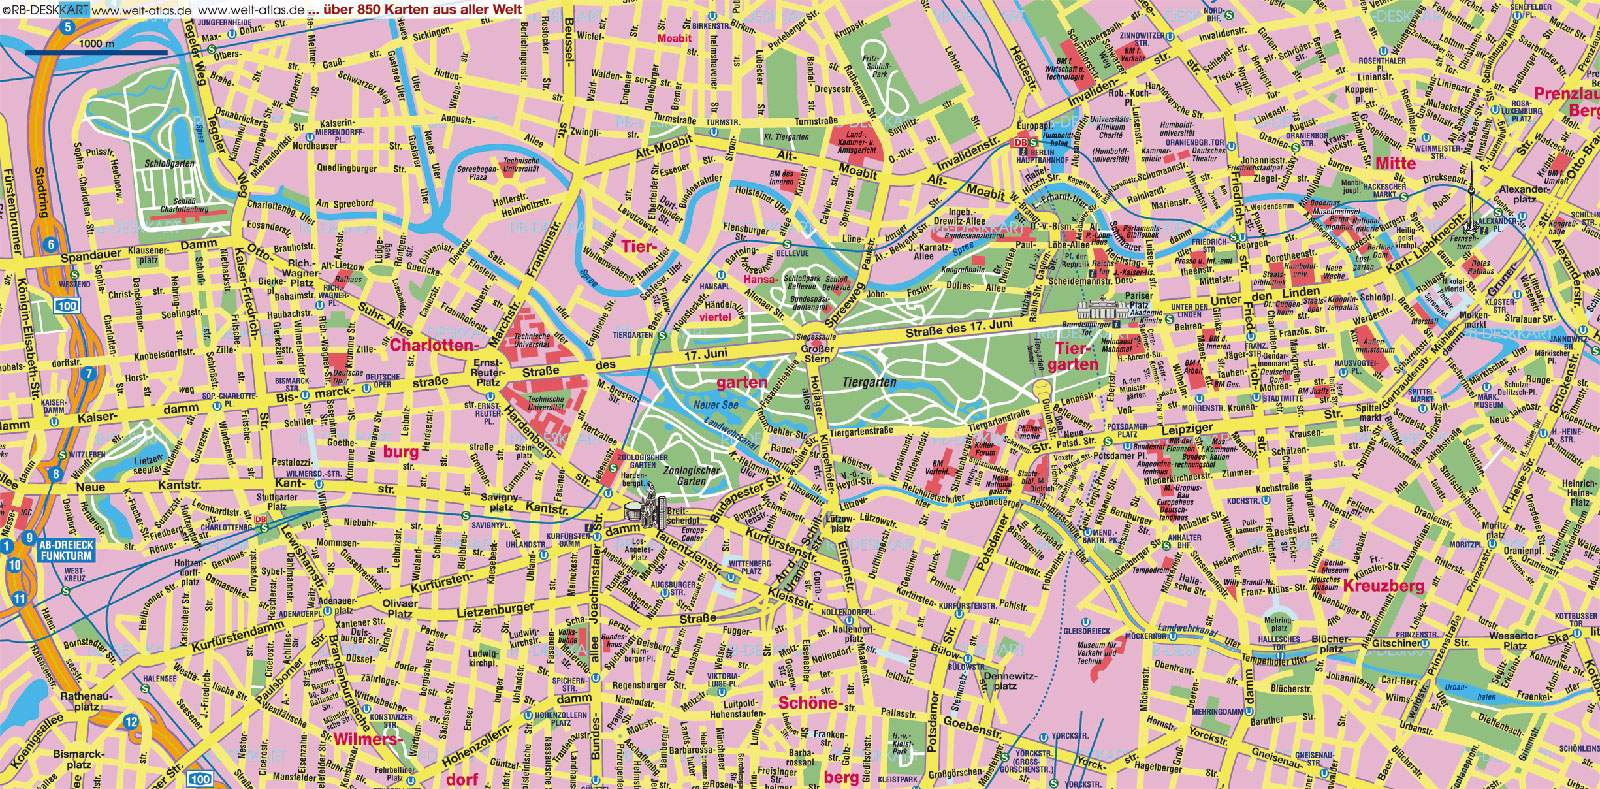 karte von berlin Large Berlin Maps for Free Download and Print | High Resolution  karte von berlin